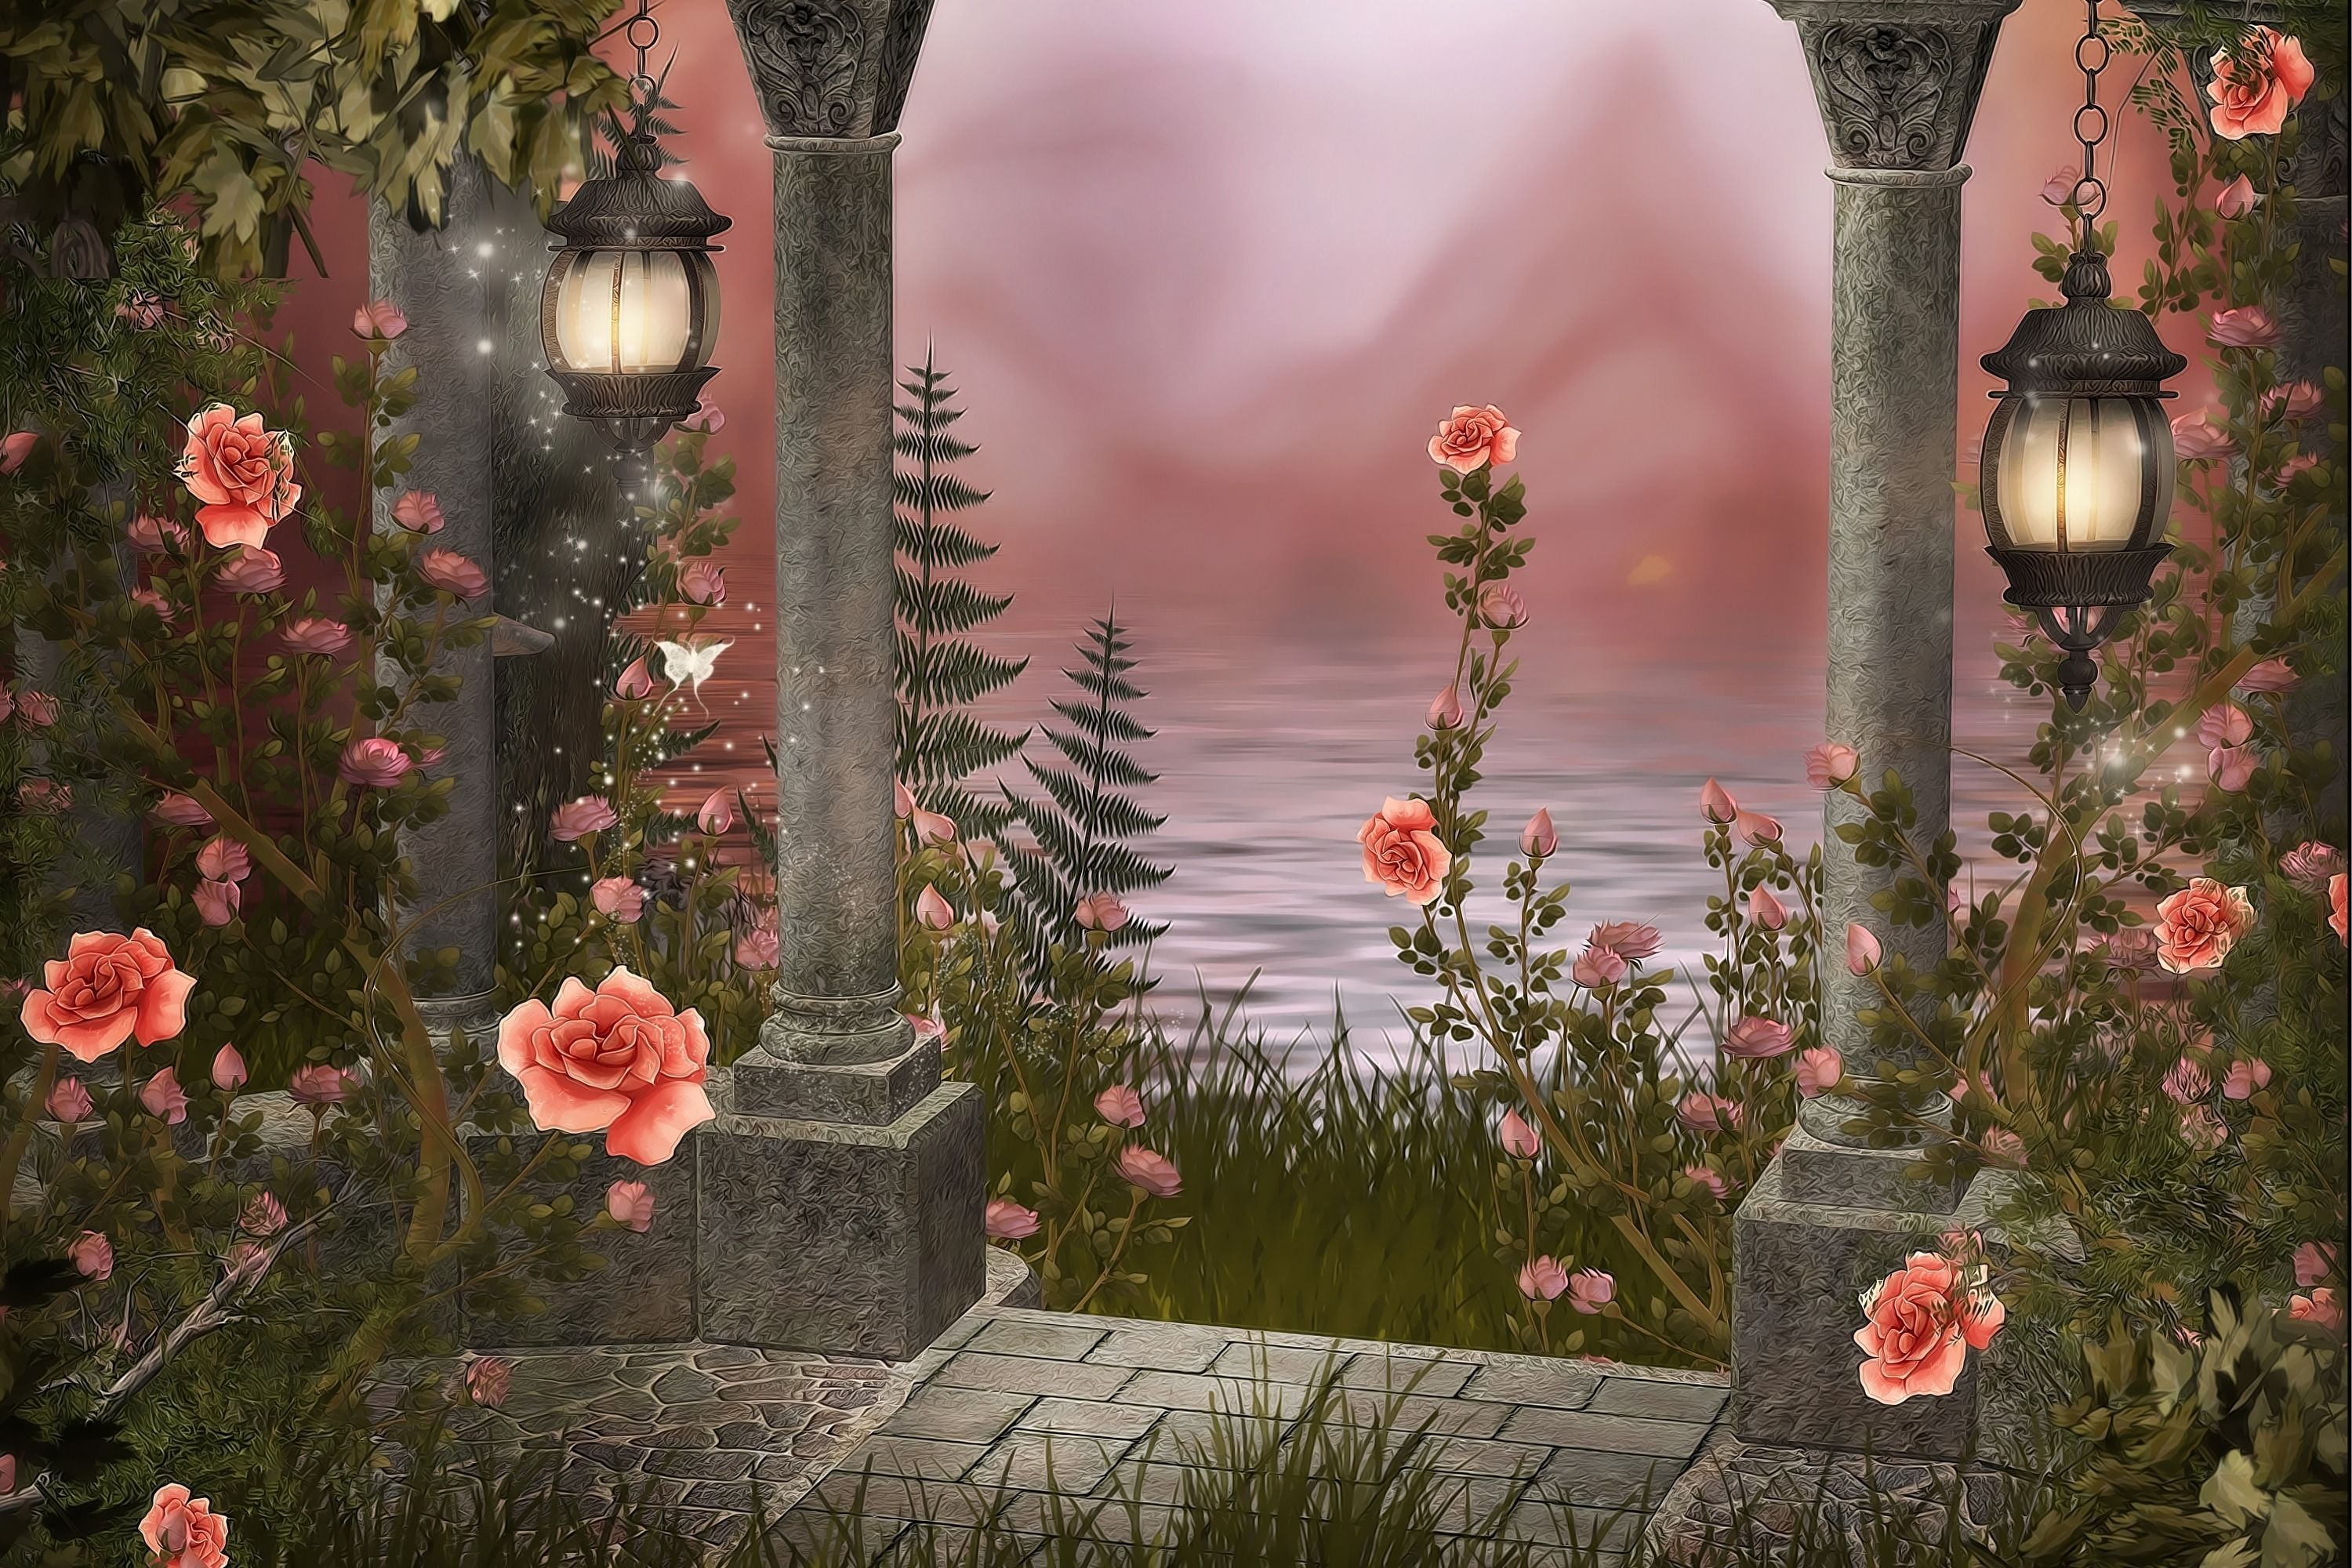 Rose Garden Is An Hd Wallpaper Posted In Flowers Category You Can